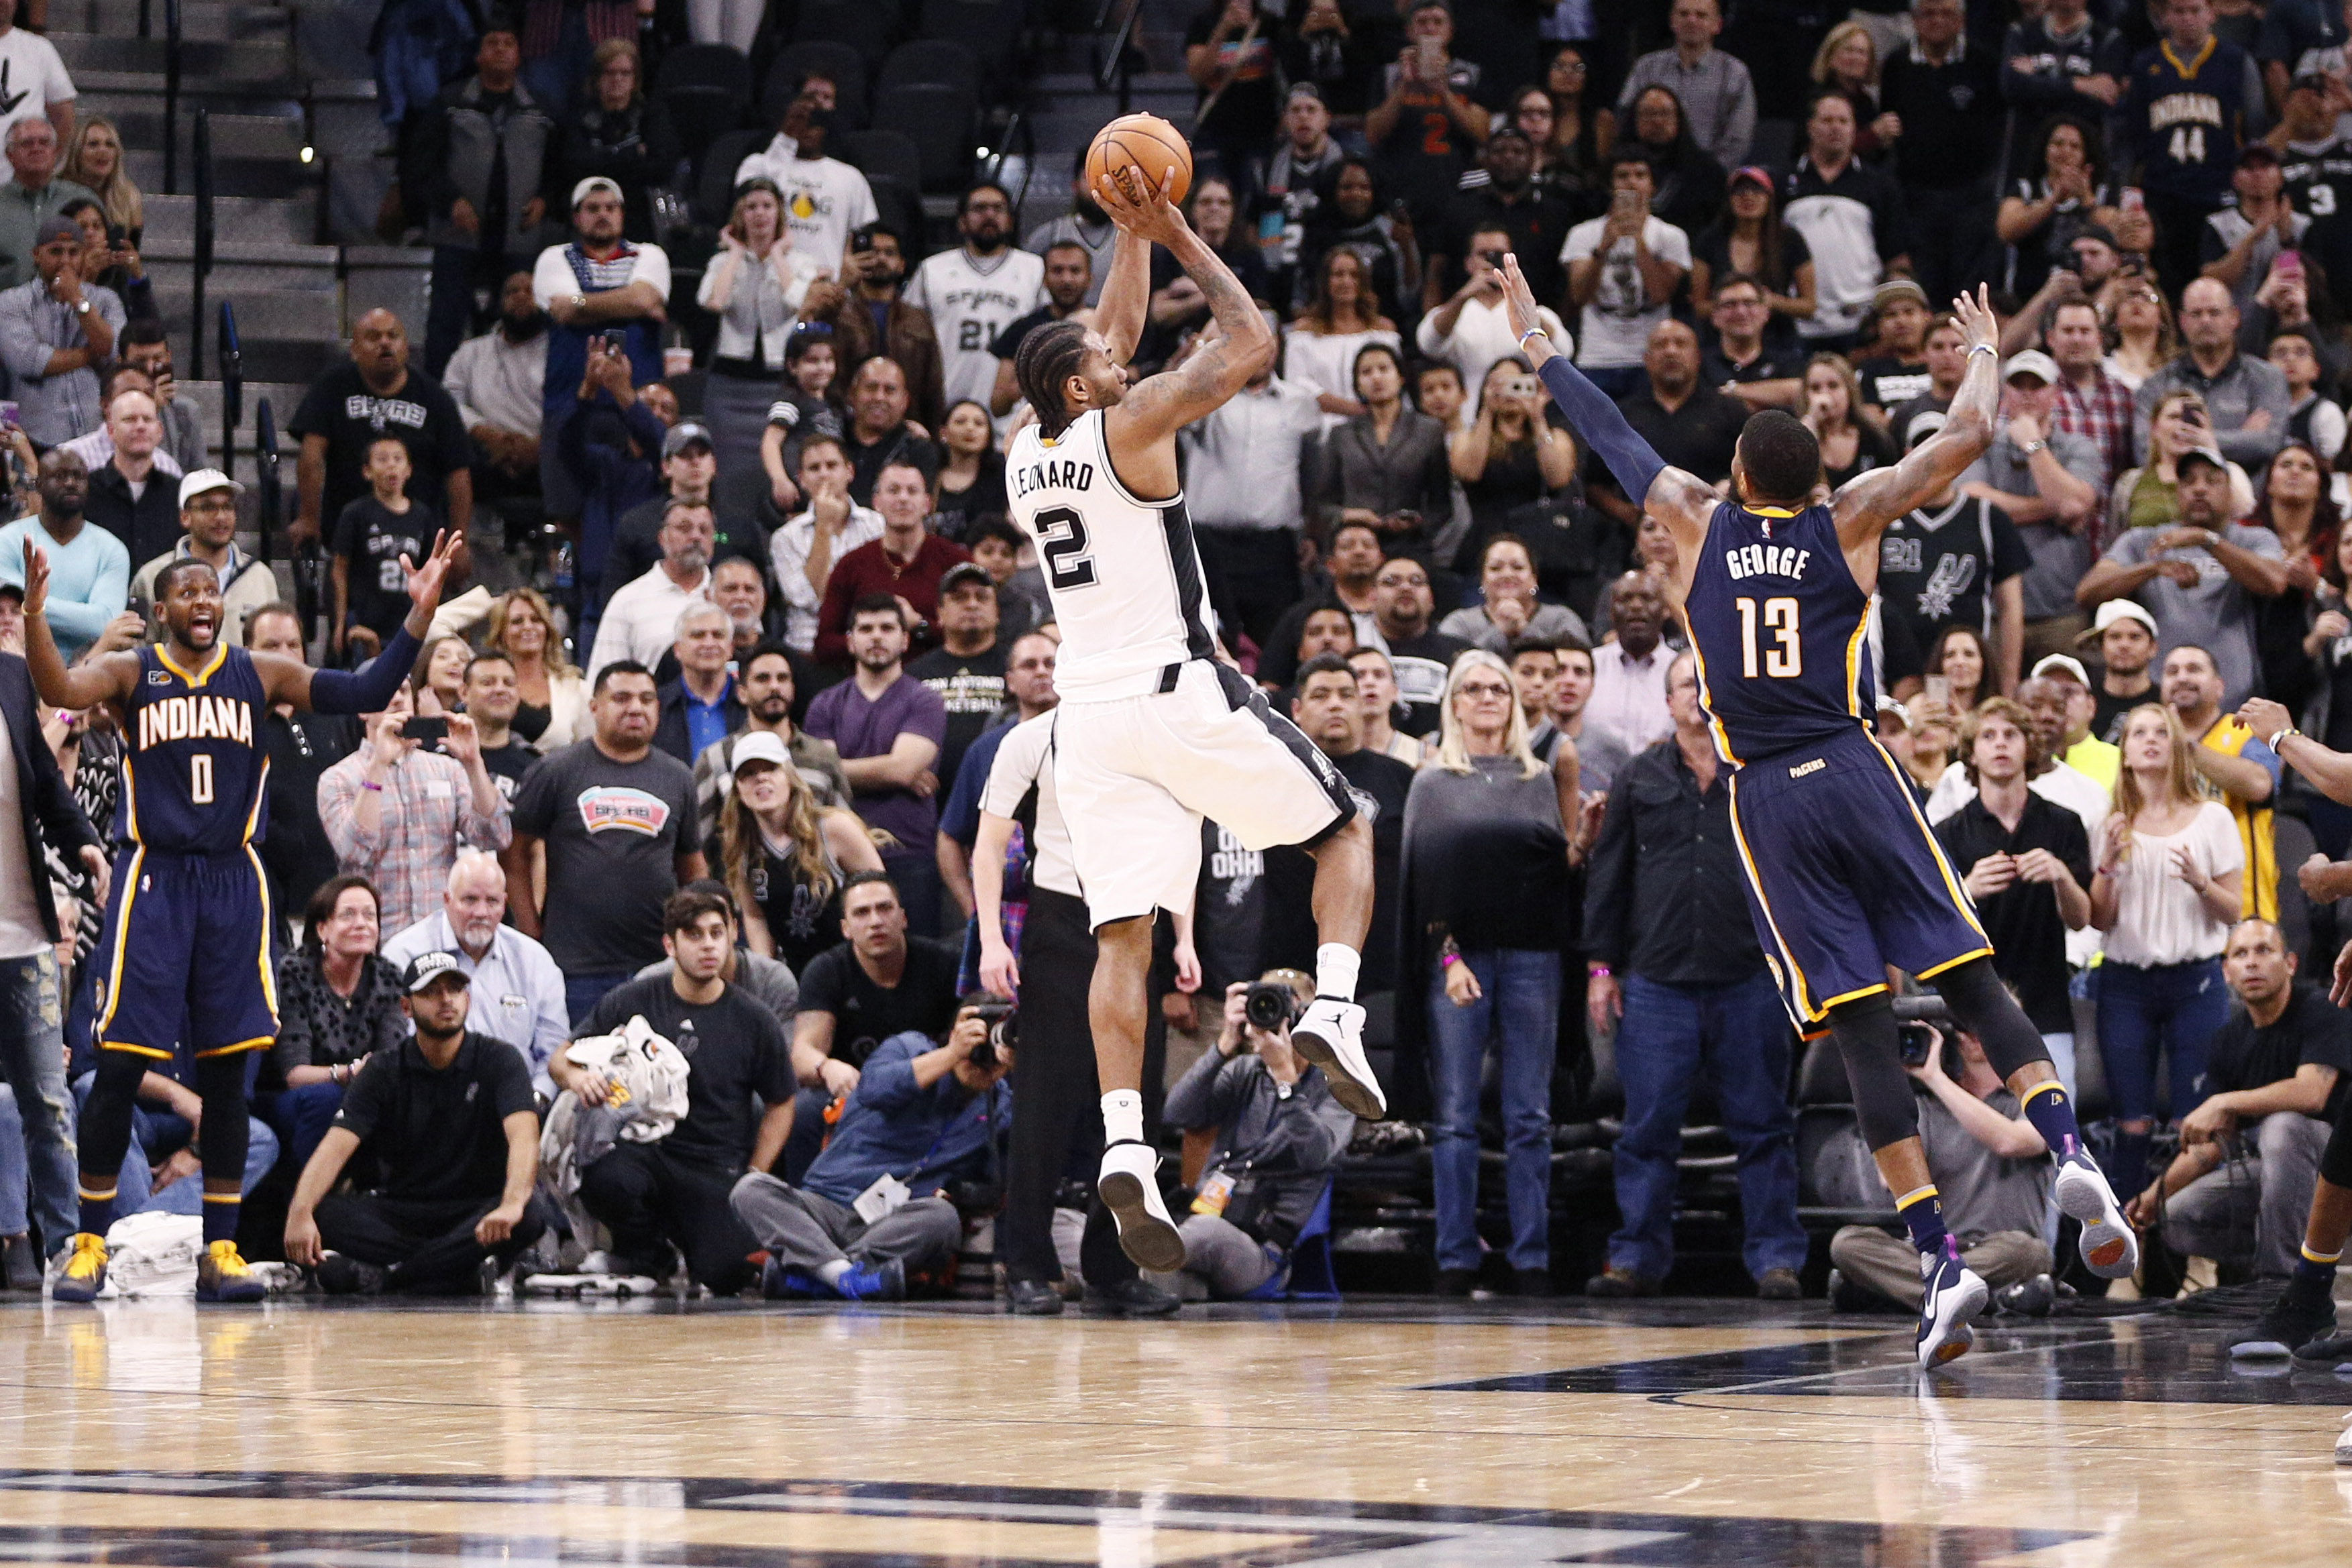 9910715-nba-indiana-pacers-at-san-antonio-spurs